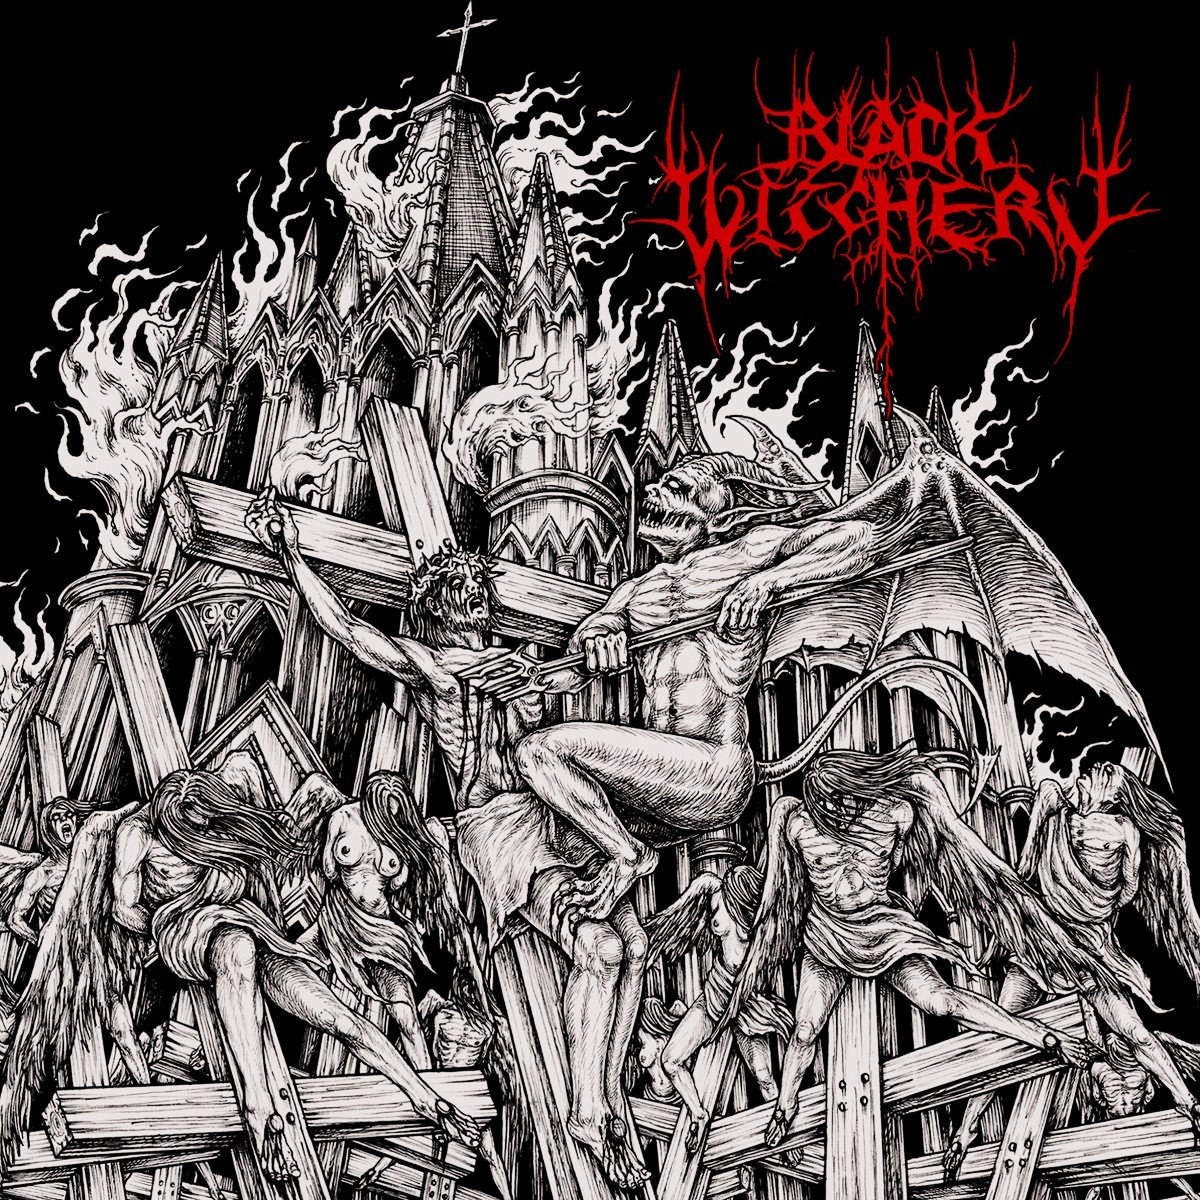 Review for Black Witchery - Inferno of Sacred Destruction